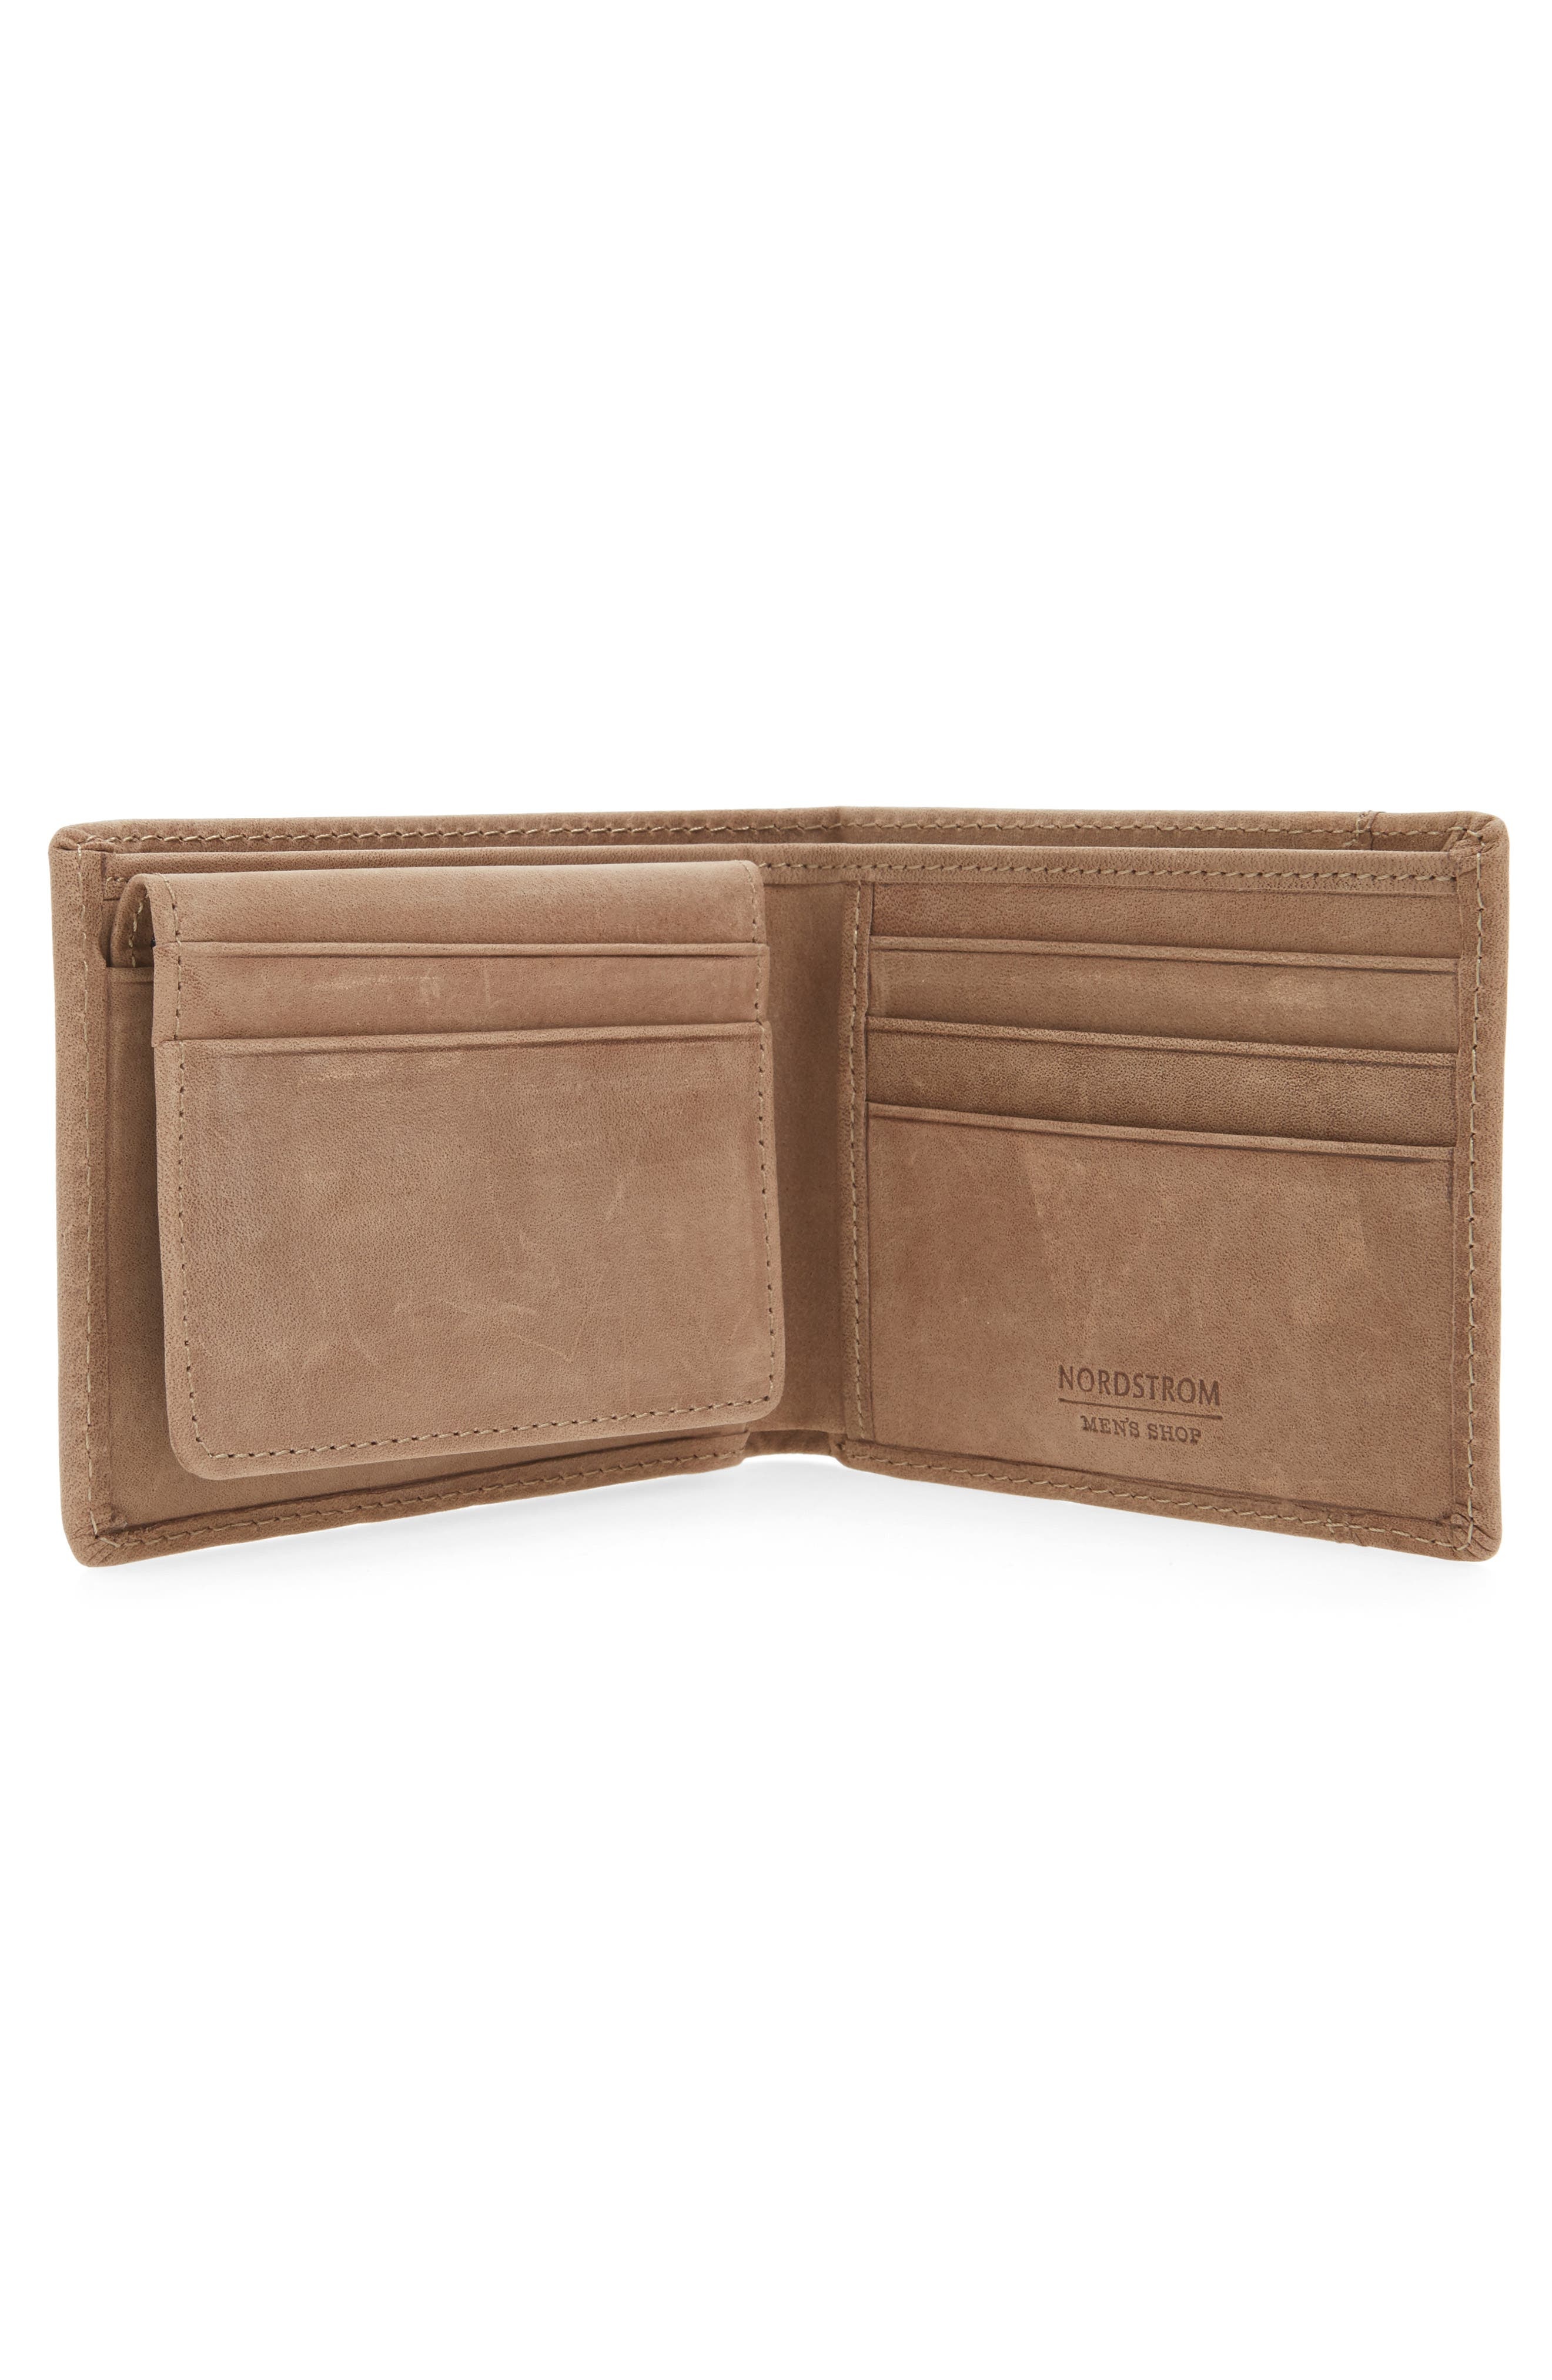 Upton Leather Wallet,                             Alternate thumbnail 2, color,